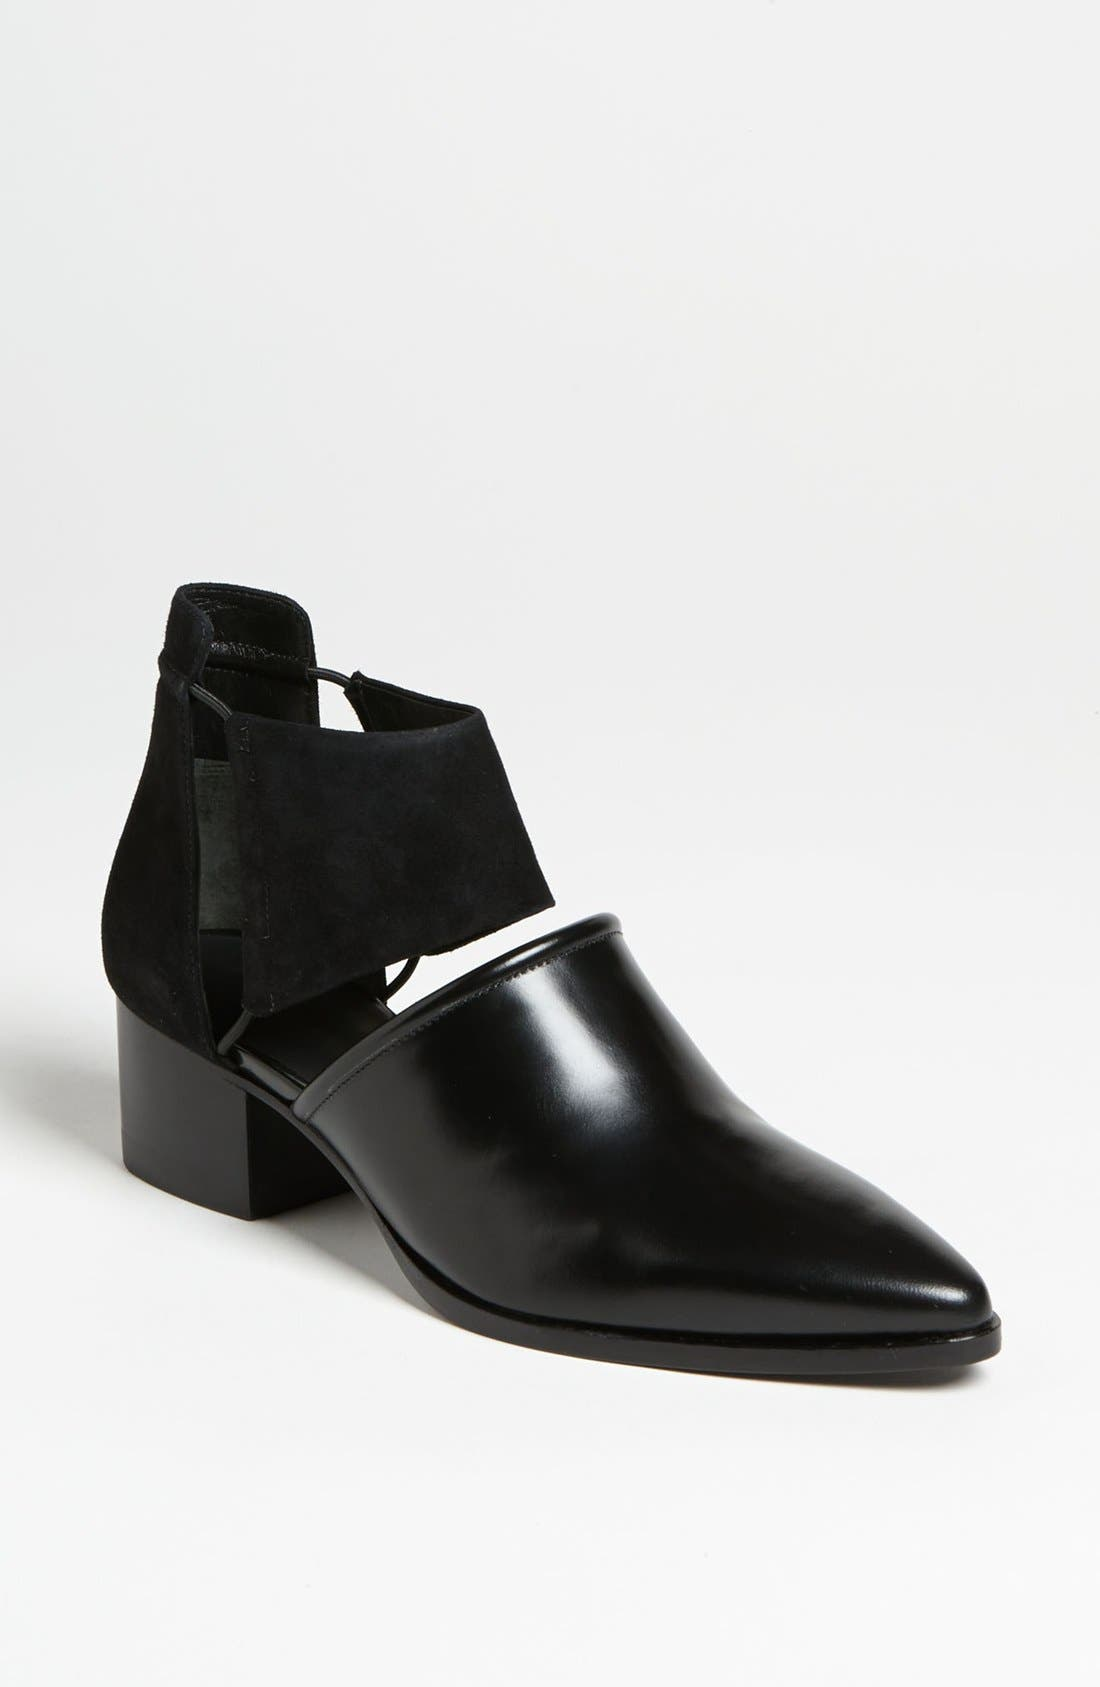 Main Image - Alexander Wang 'Nadine' Ankle Boot